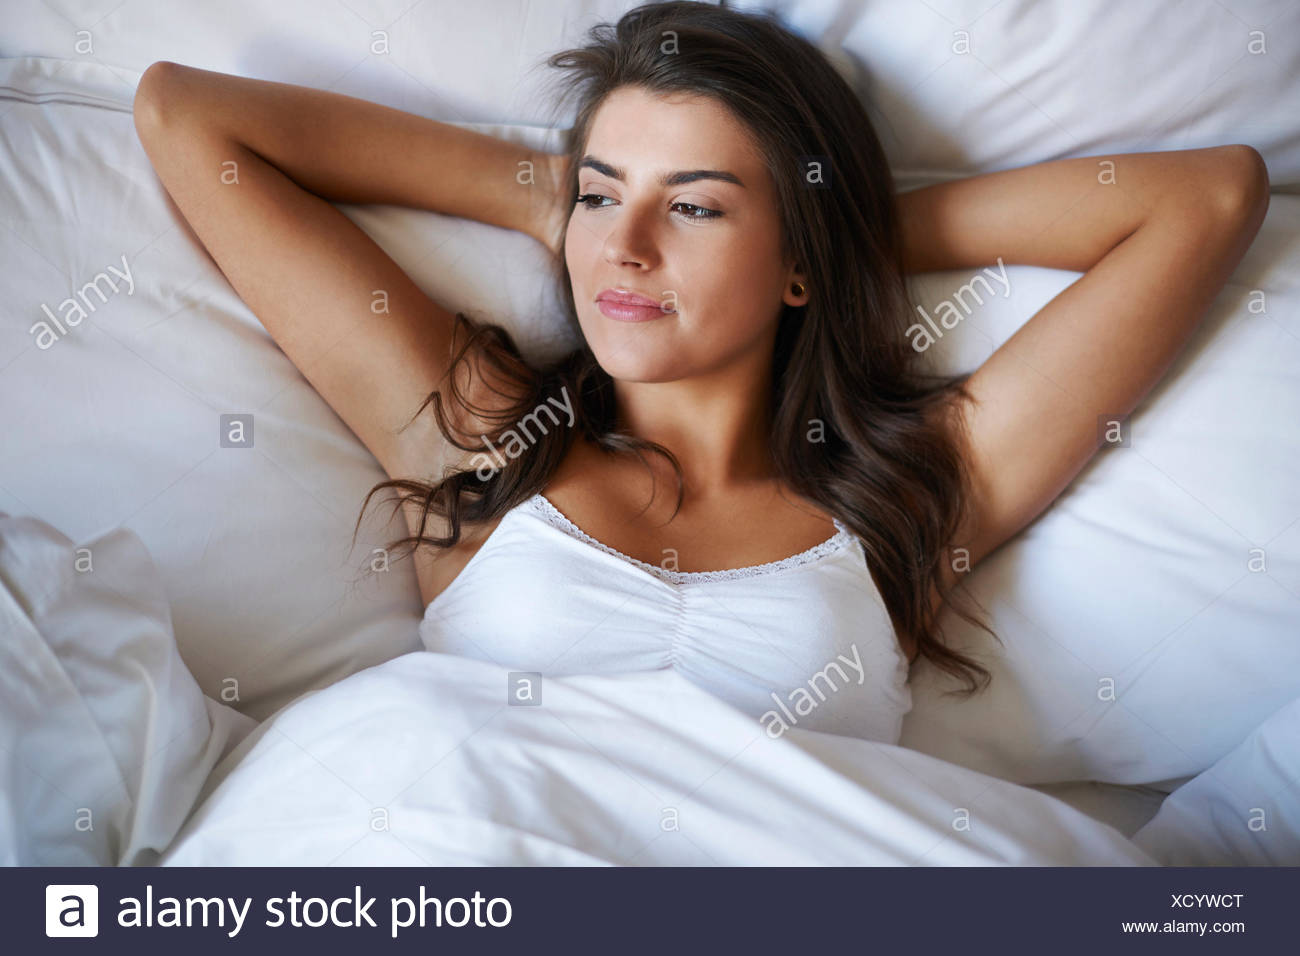 Nothing better than starting the day in a relaxed way. Debica, Poland - Stock Image